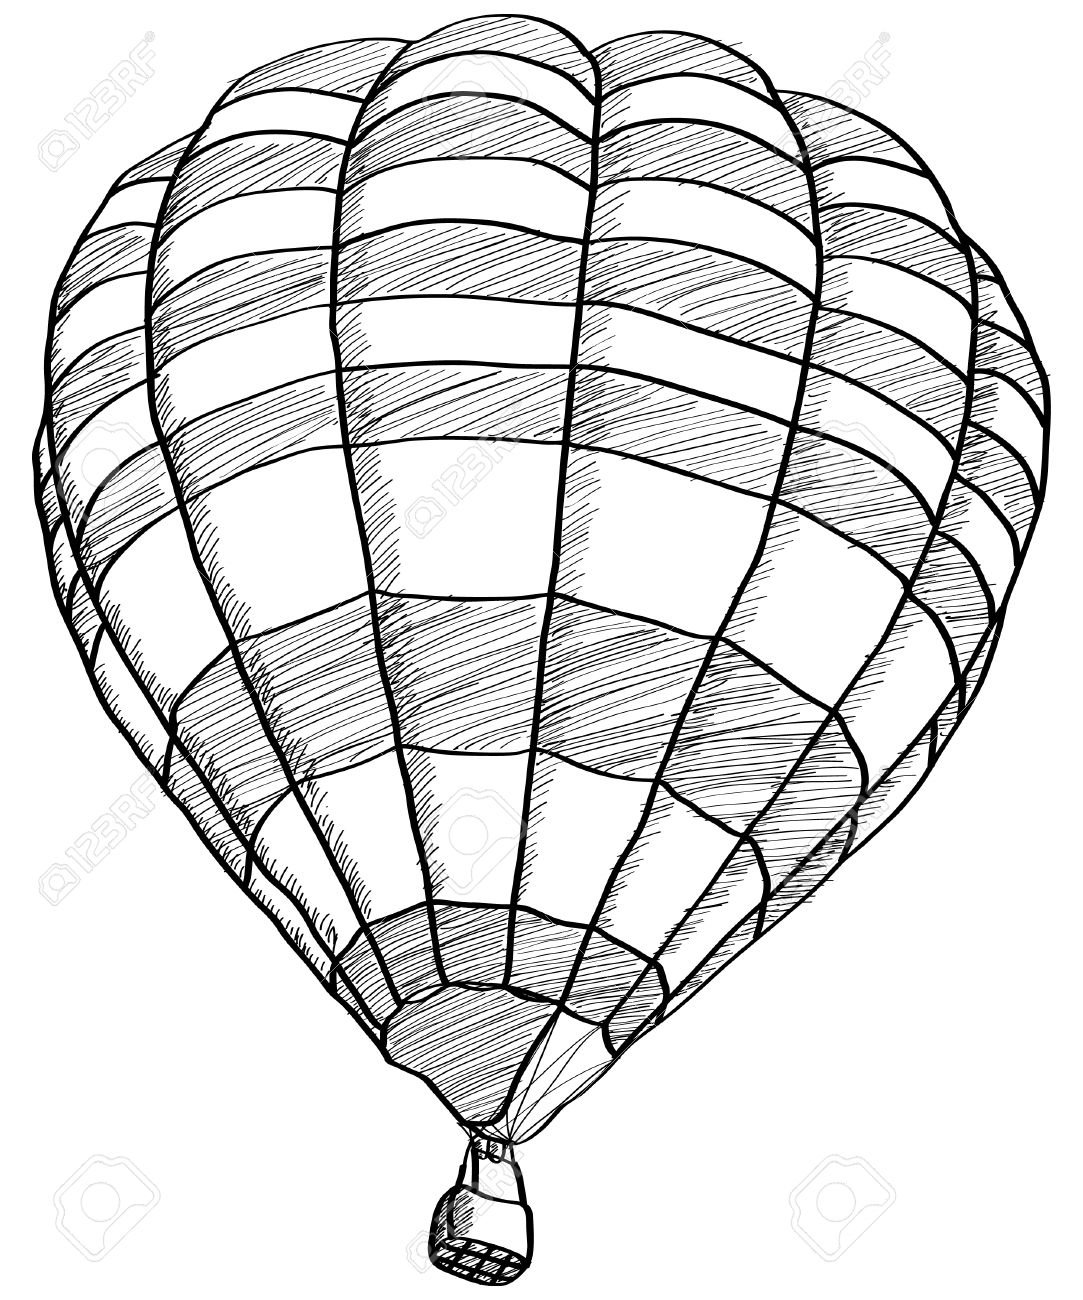 sketch of a balloon hot air balloon illustration drawing engraving ink line balloon a of sketch